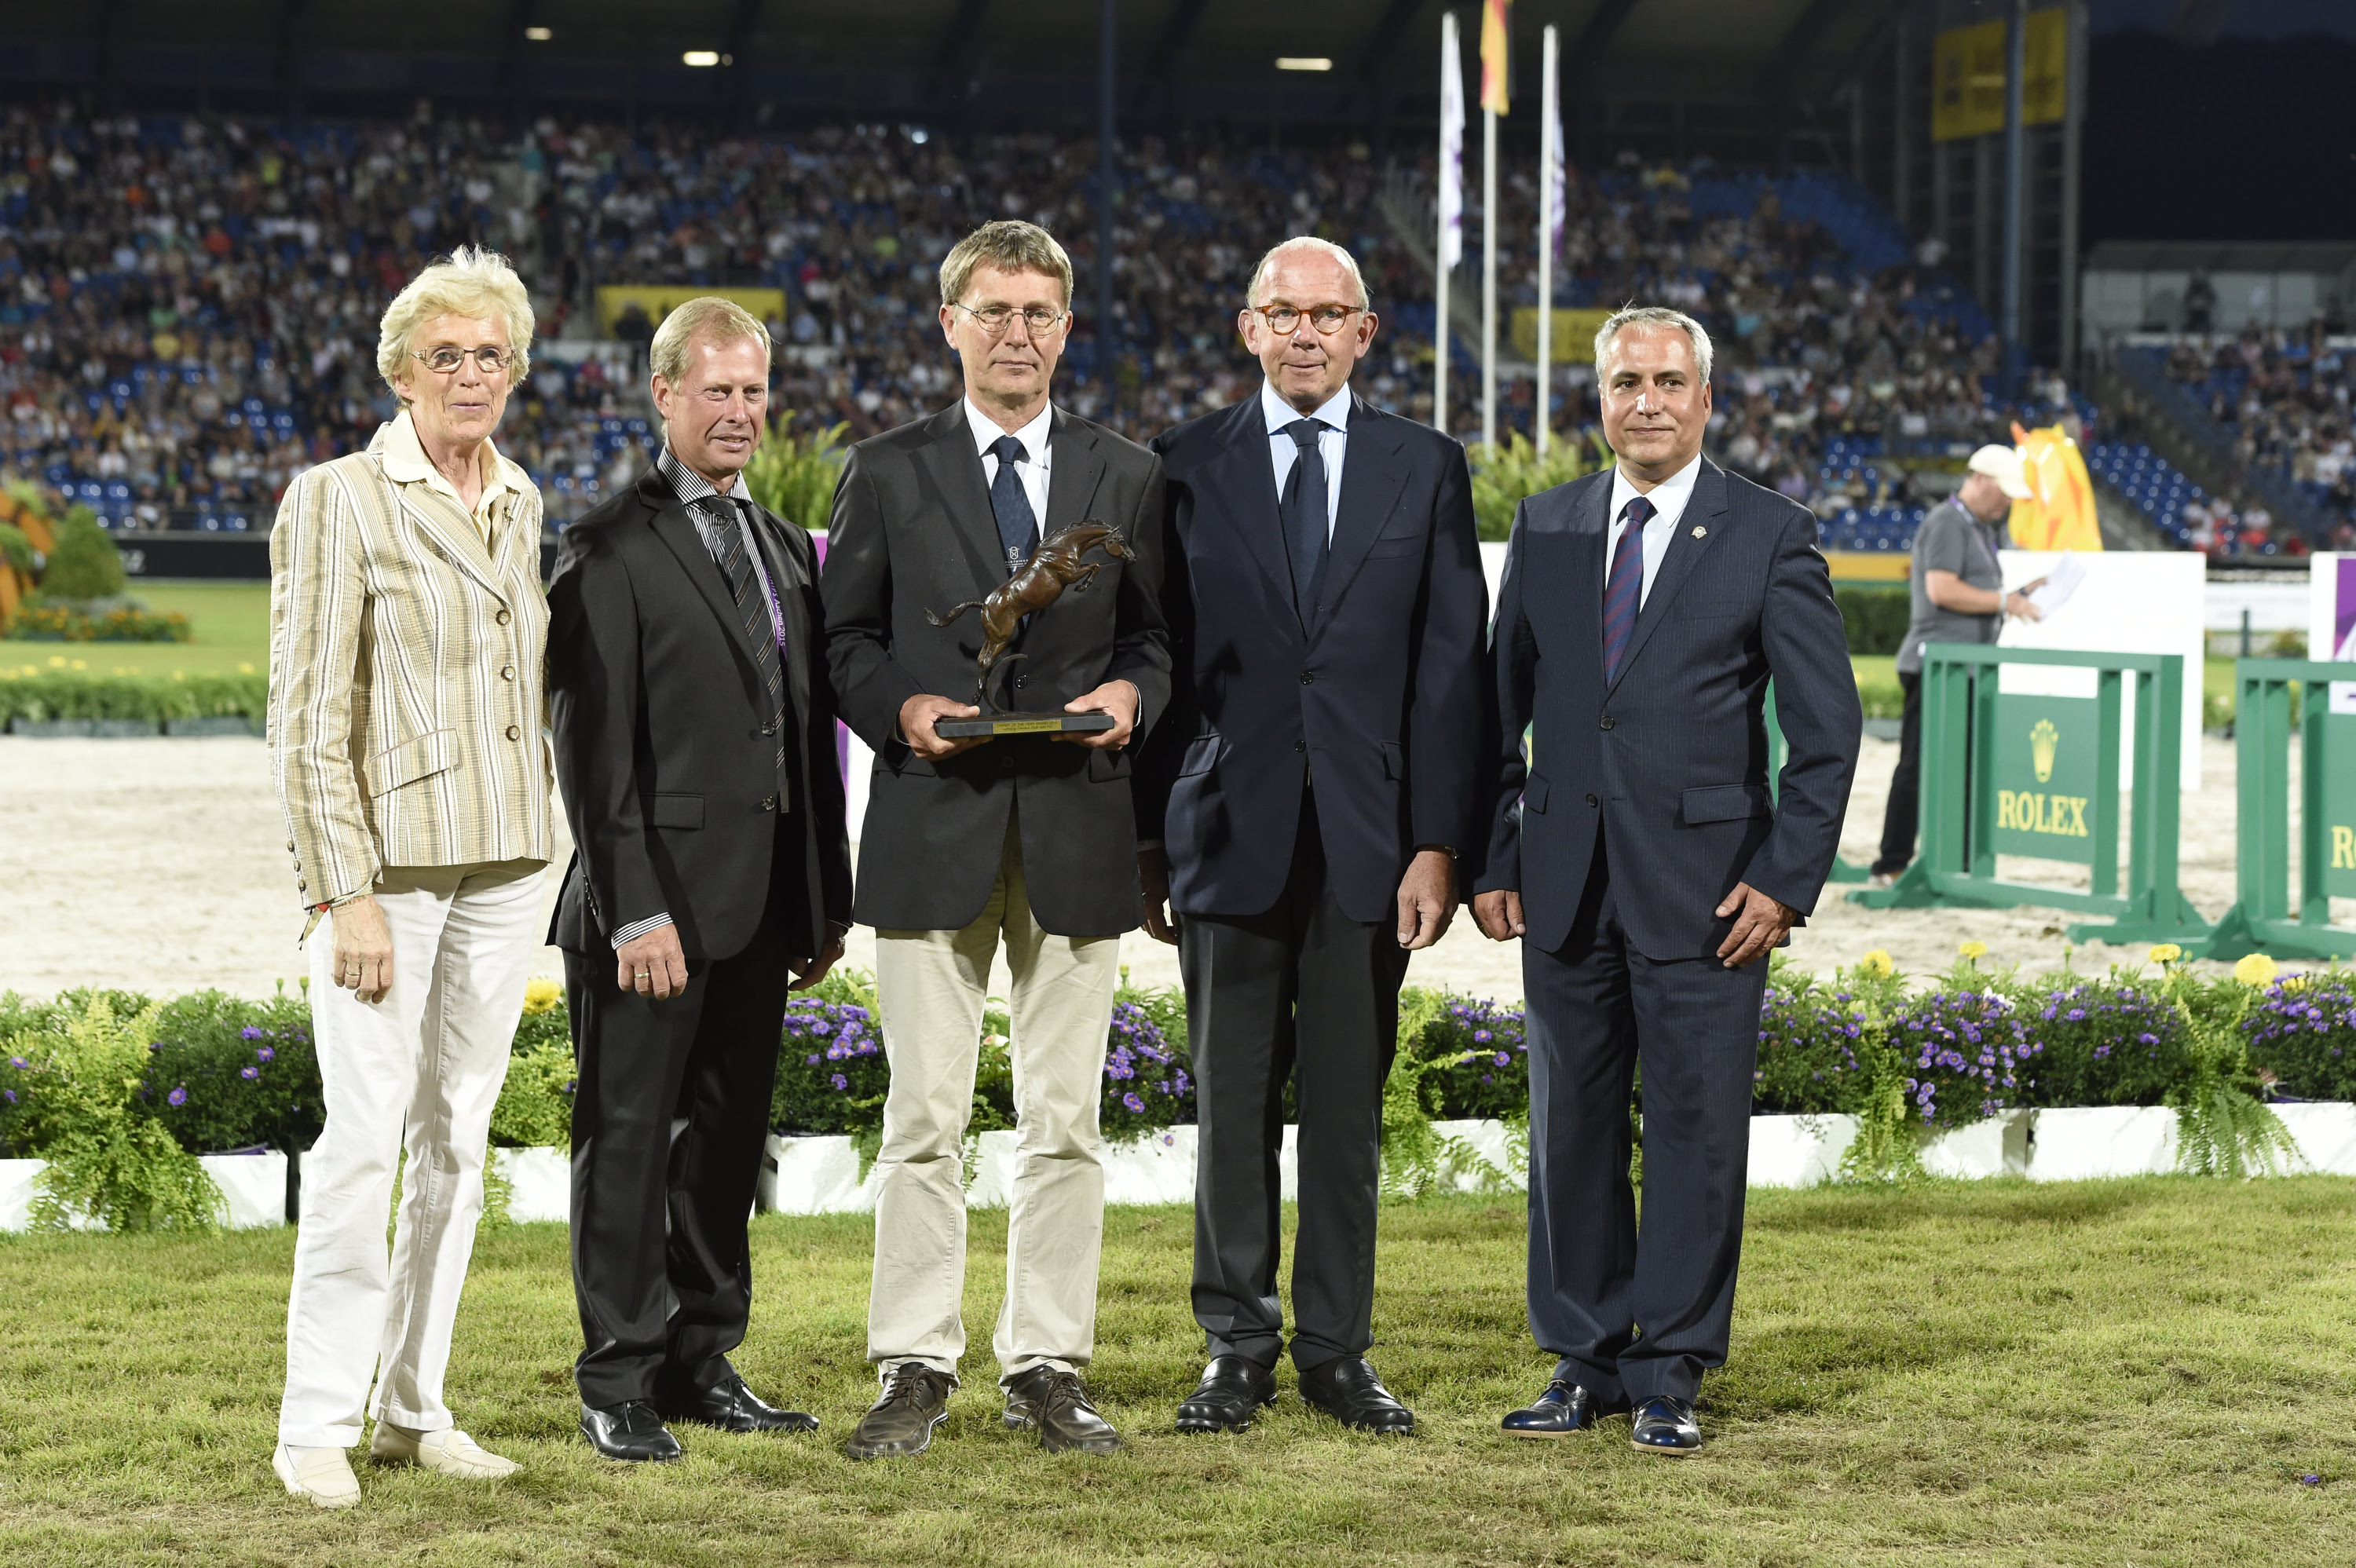 Horse Times Egypt: Equestrian Magazine :News :HOLSTEINER ASSOCIATION NAMED 2014 JOC OWNER OF THE YEAR WITH CASALL ASK